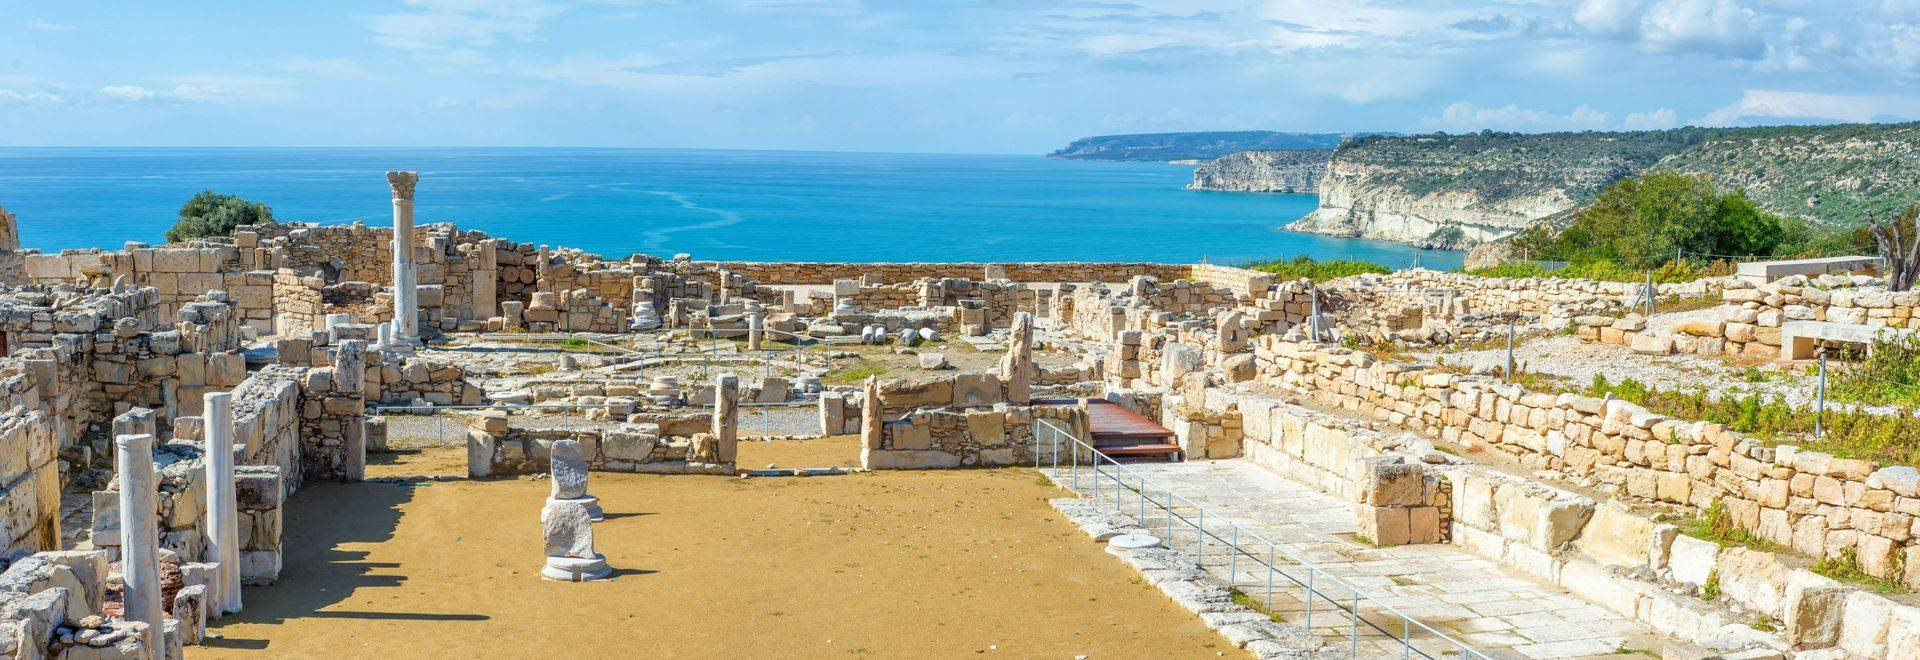 Panoramic view of Kourion archaeological site. Limassol District, Cyprus